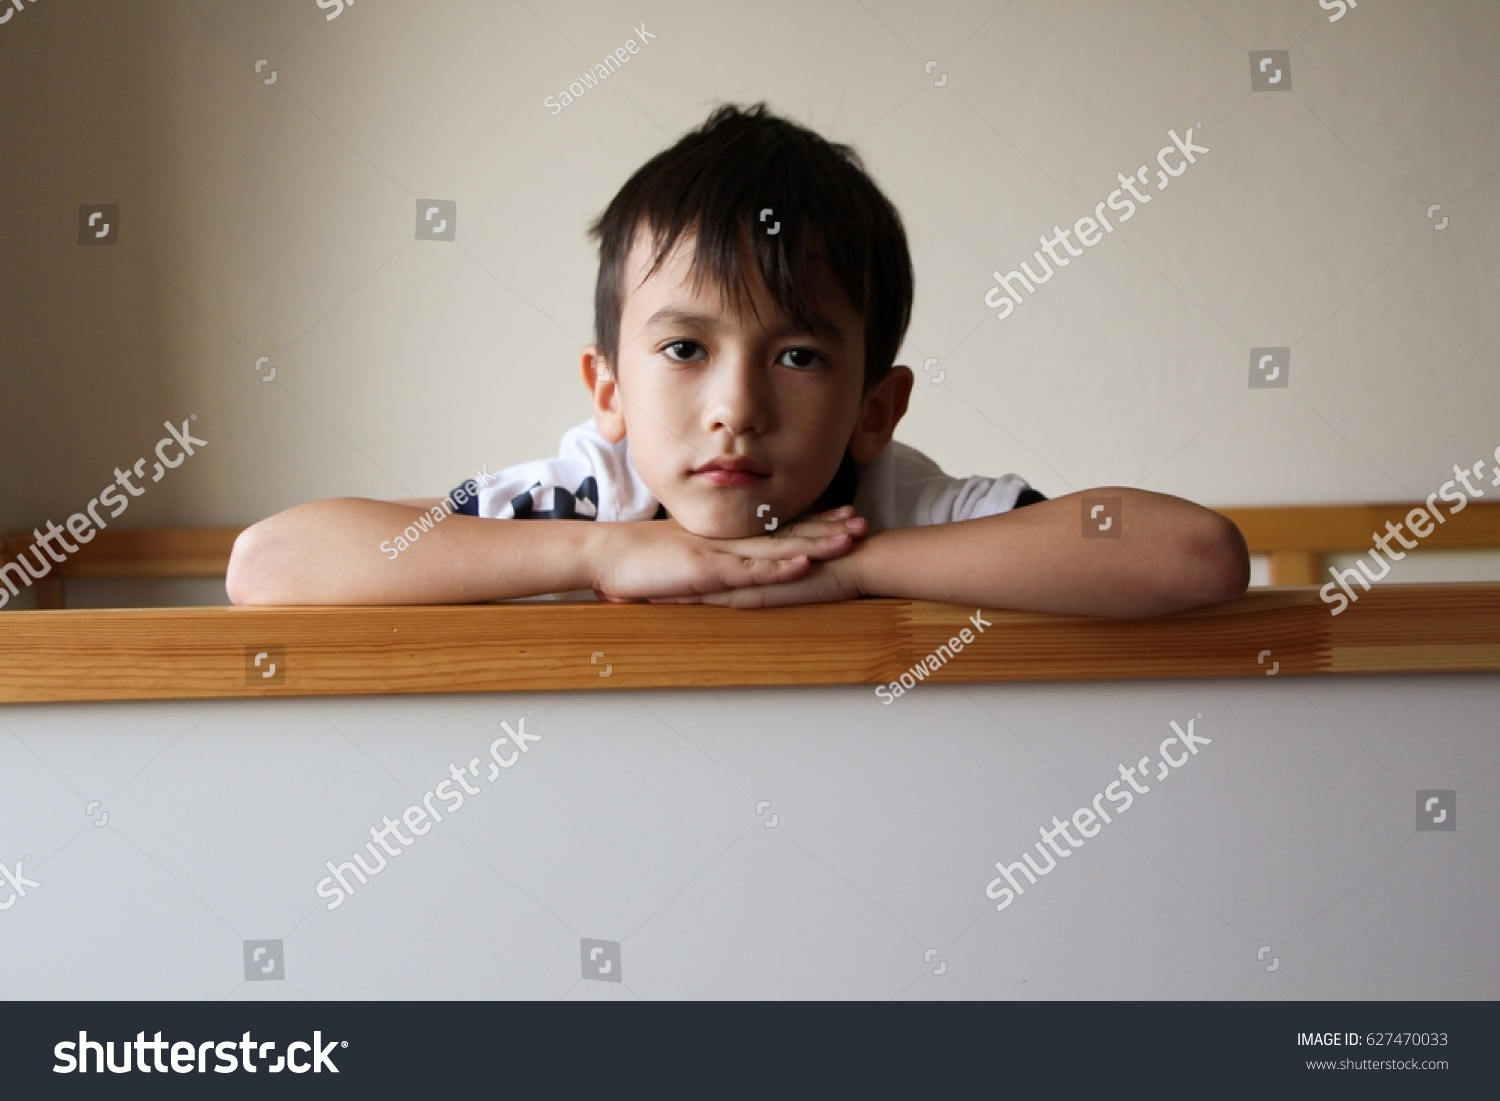 Image result for child alone on his bed